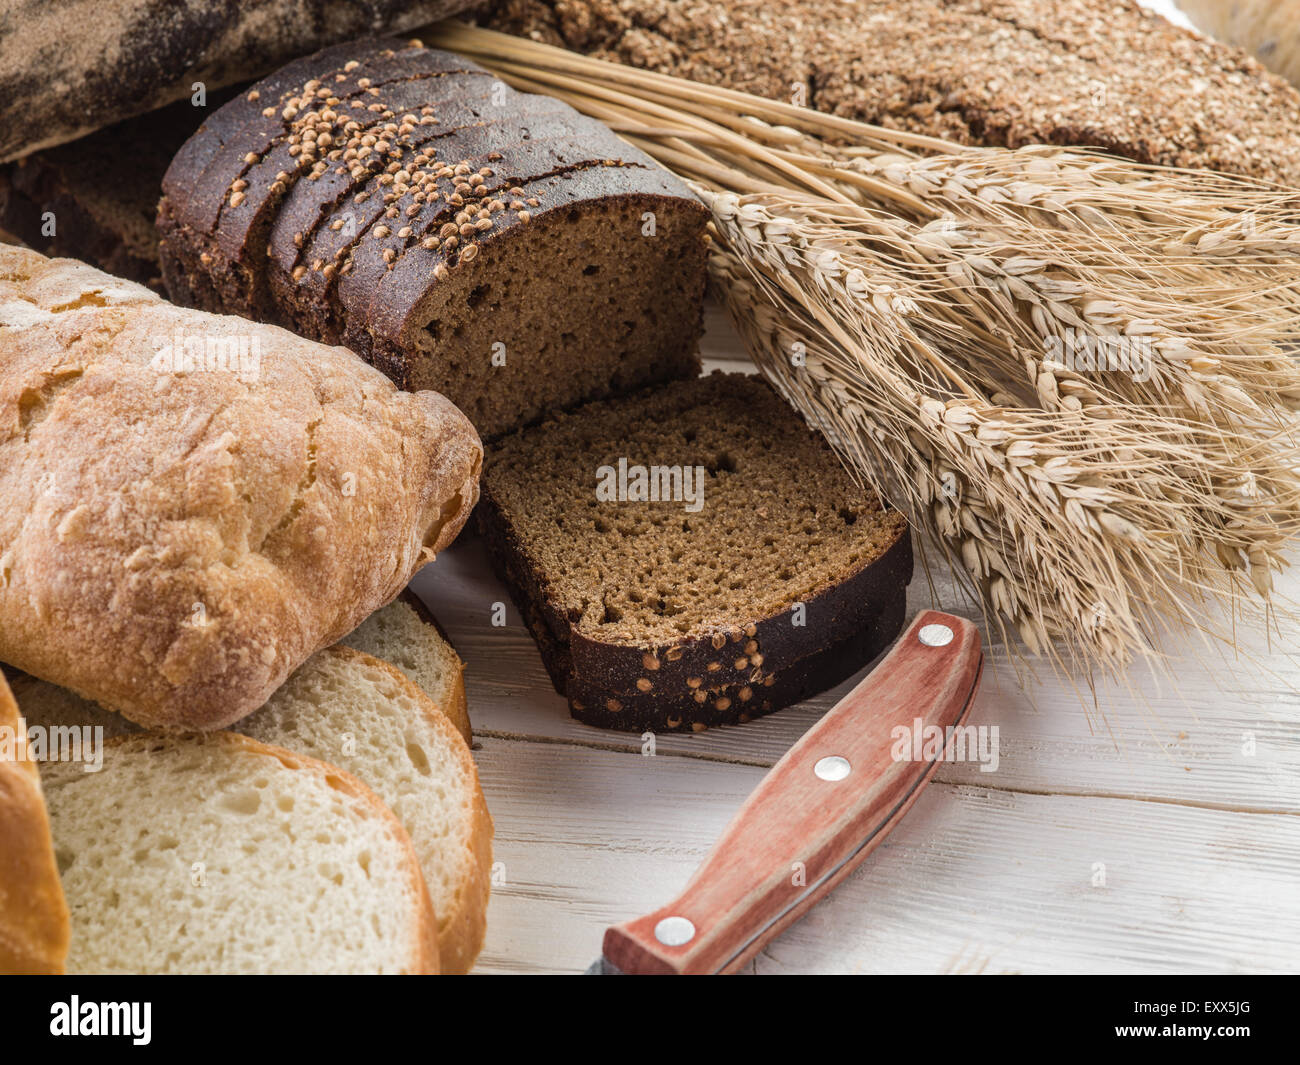 The bread and a wheat on the wooden desk. - Stock Image